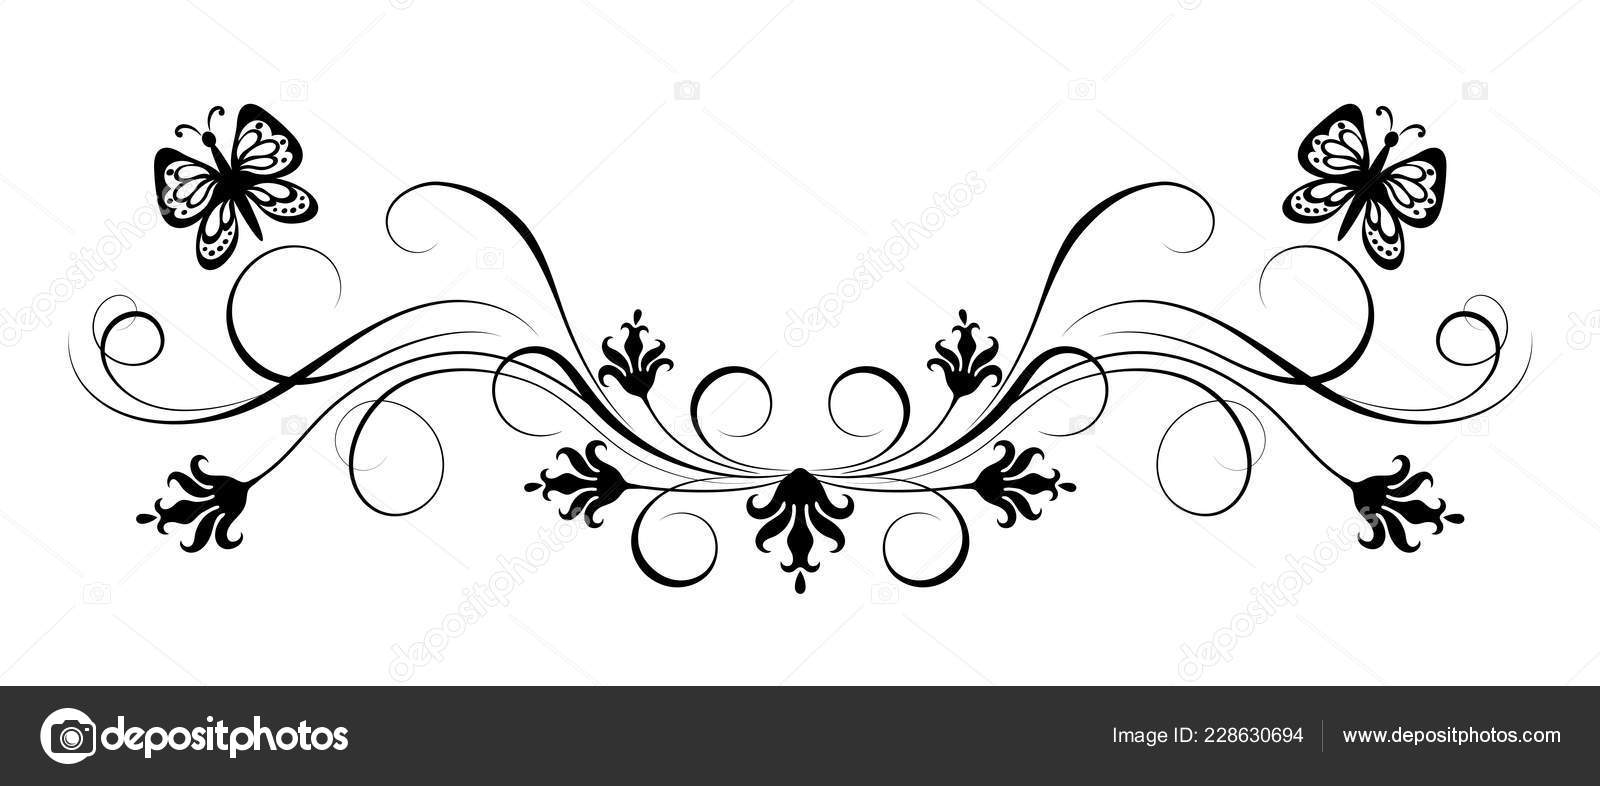 Decorative Flora Ornament Flowers Butterfly Stencil Isolated